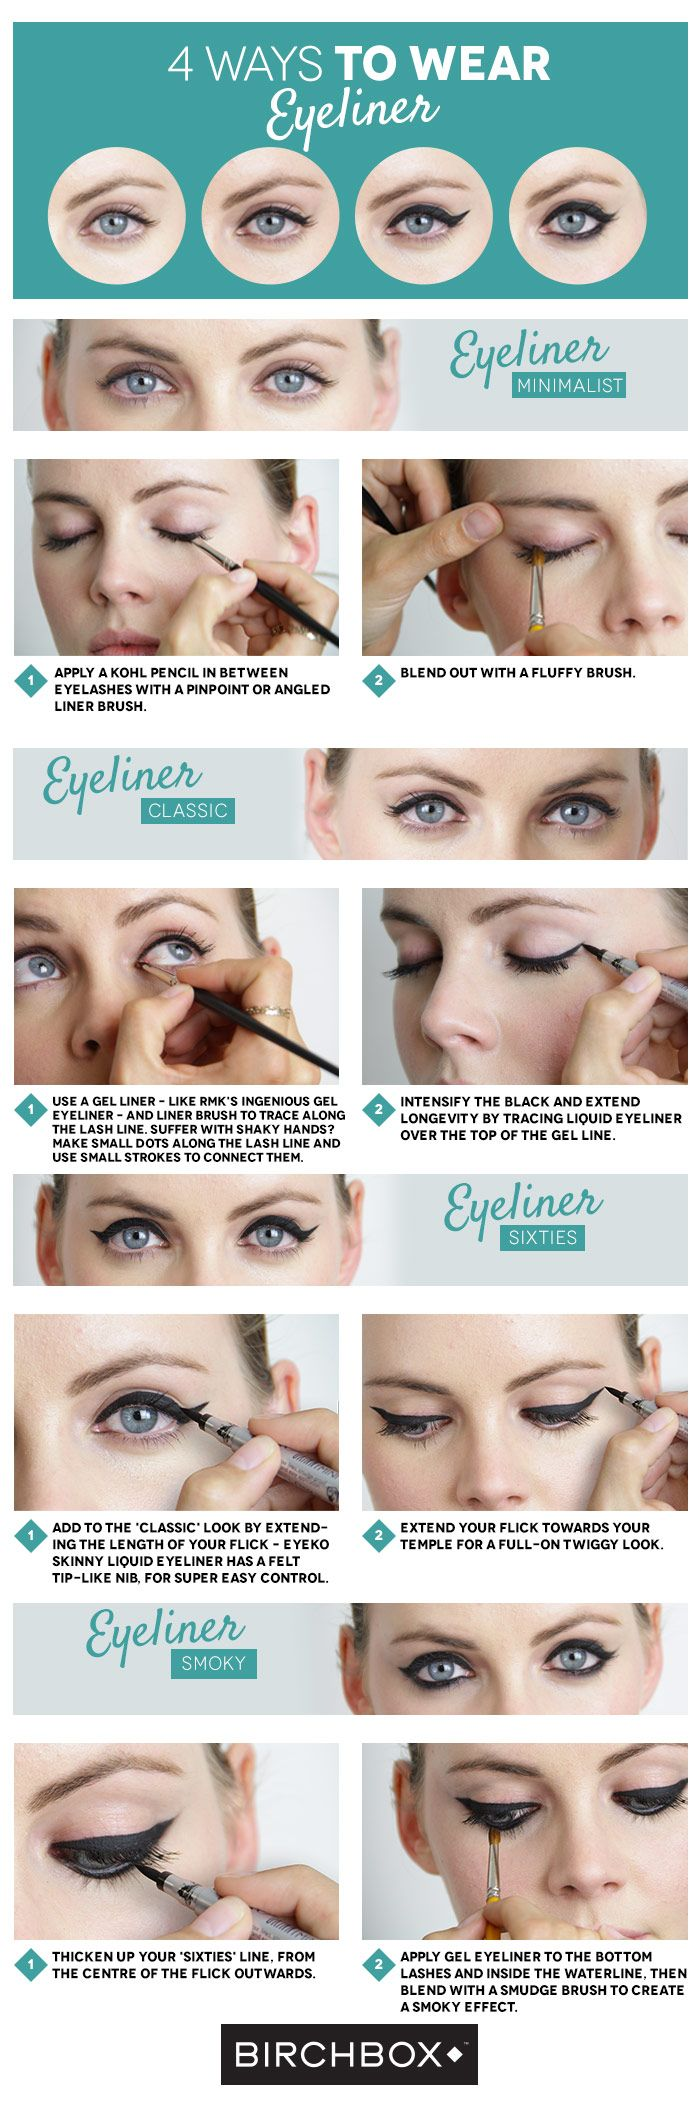 4 Ways To Wear Eyeliner - Eyeliner is one of our most treasured secret make-up weapons – you can obtain multiple looks with the right tools, from a chic feline flick to a sultry smoky eye. Birchbox France Editor Mathilde shared four top options with us – there's one for everyone...